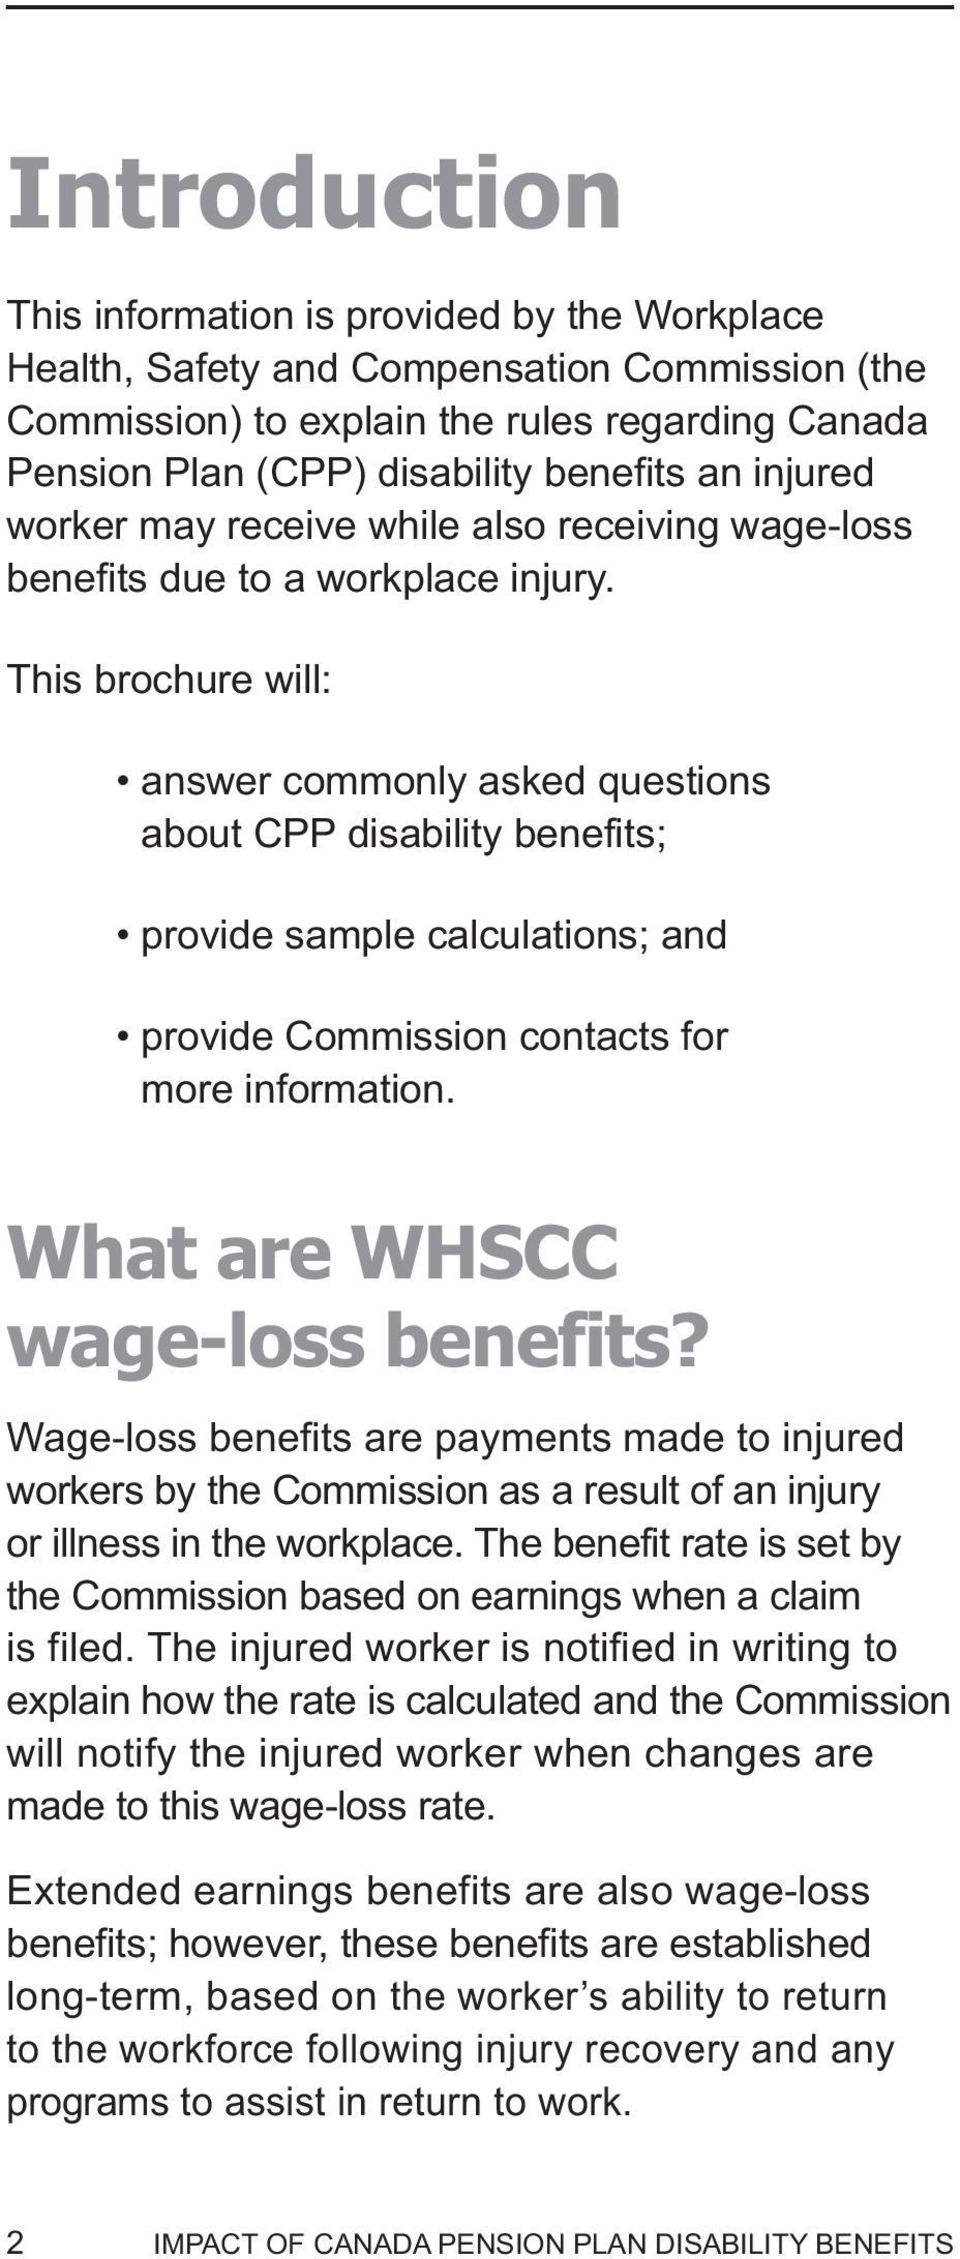 This brochure will: answer commonly asked questions about CPP disability benefits; provide sample calculations; and provide Commission contacts for more information. What are WHSCC wage-loss benefits?